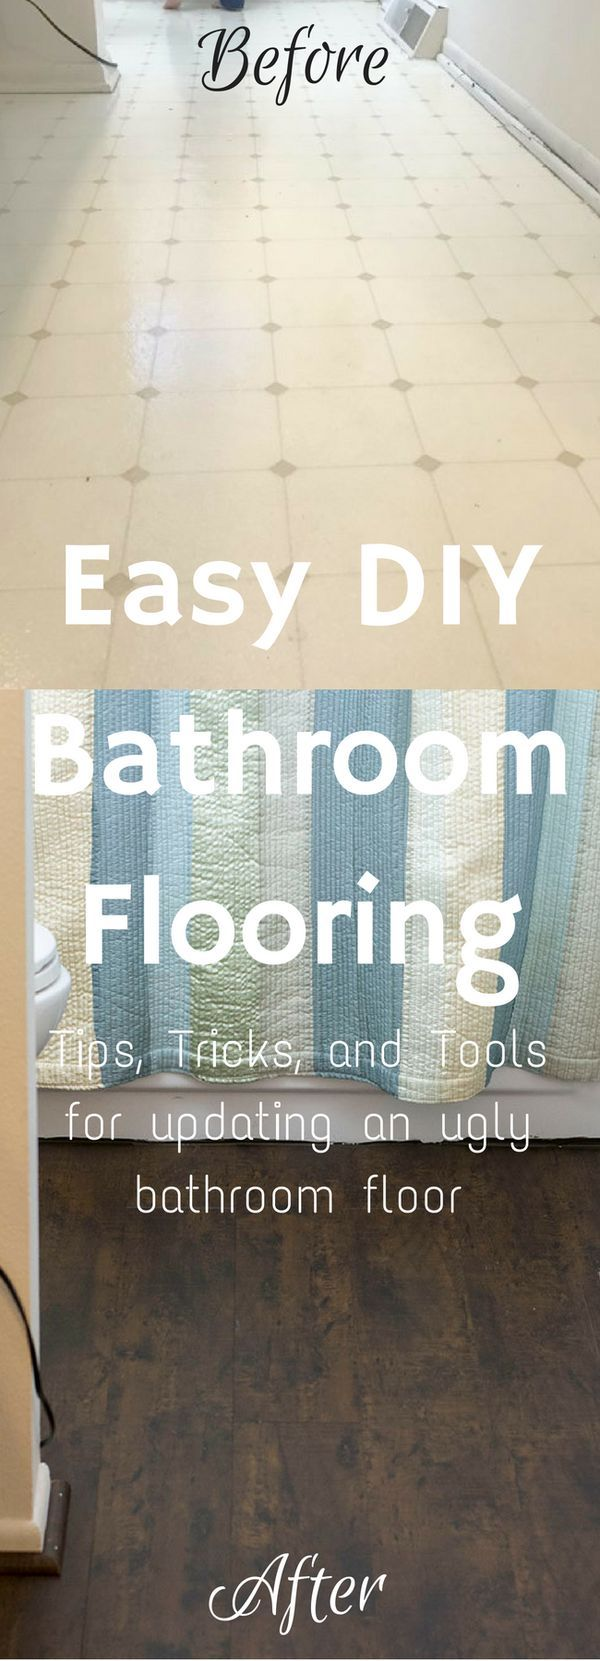 Bathroom Remodel / Bathroom Ideas / Bathroom on a Budget / Bathroom Makeover / Flooring Ideas / Floor DIY / Floor Ideas / Cheap Floor